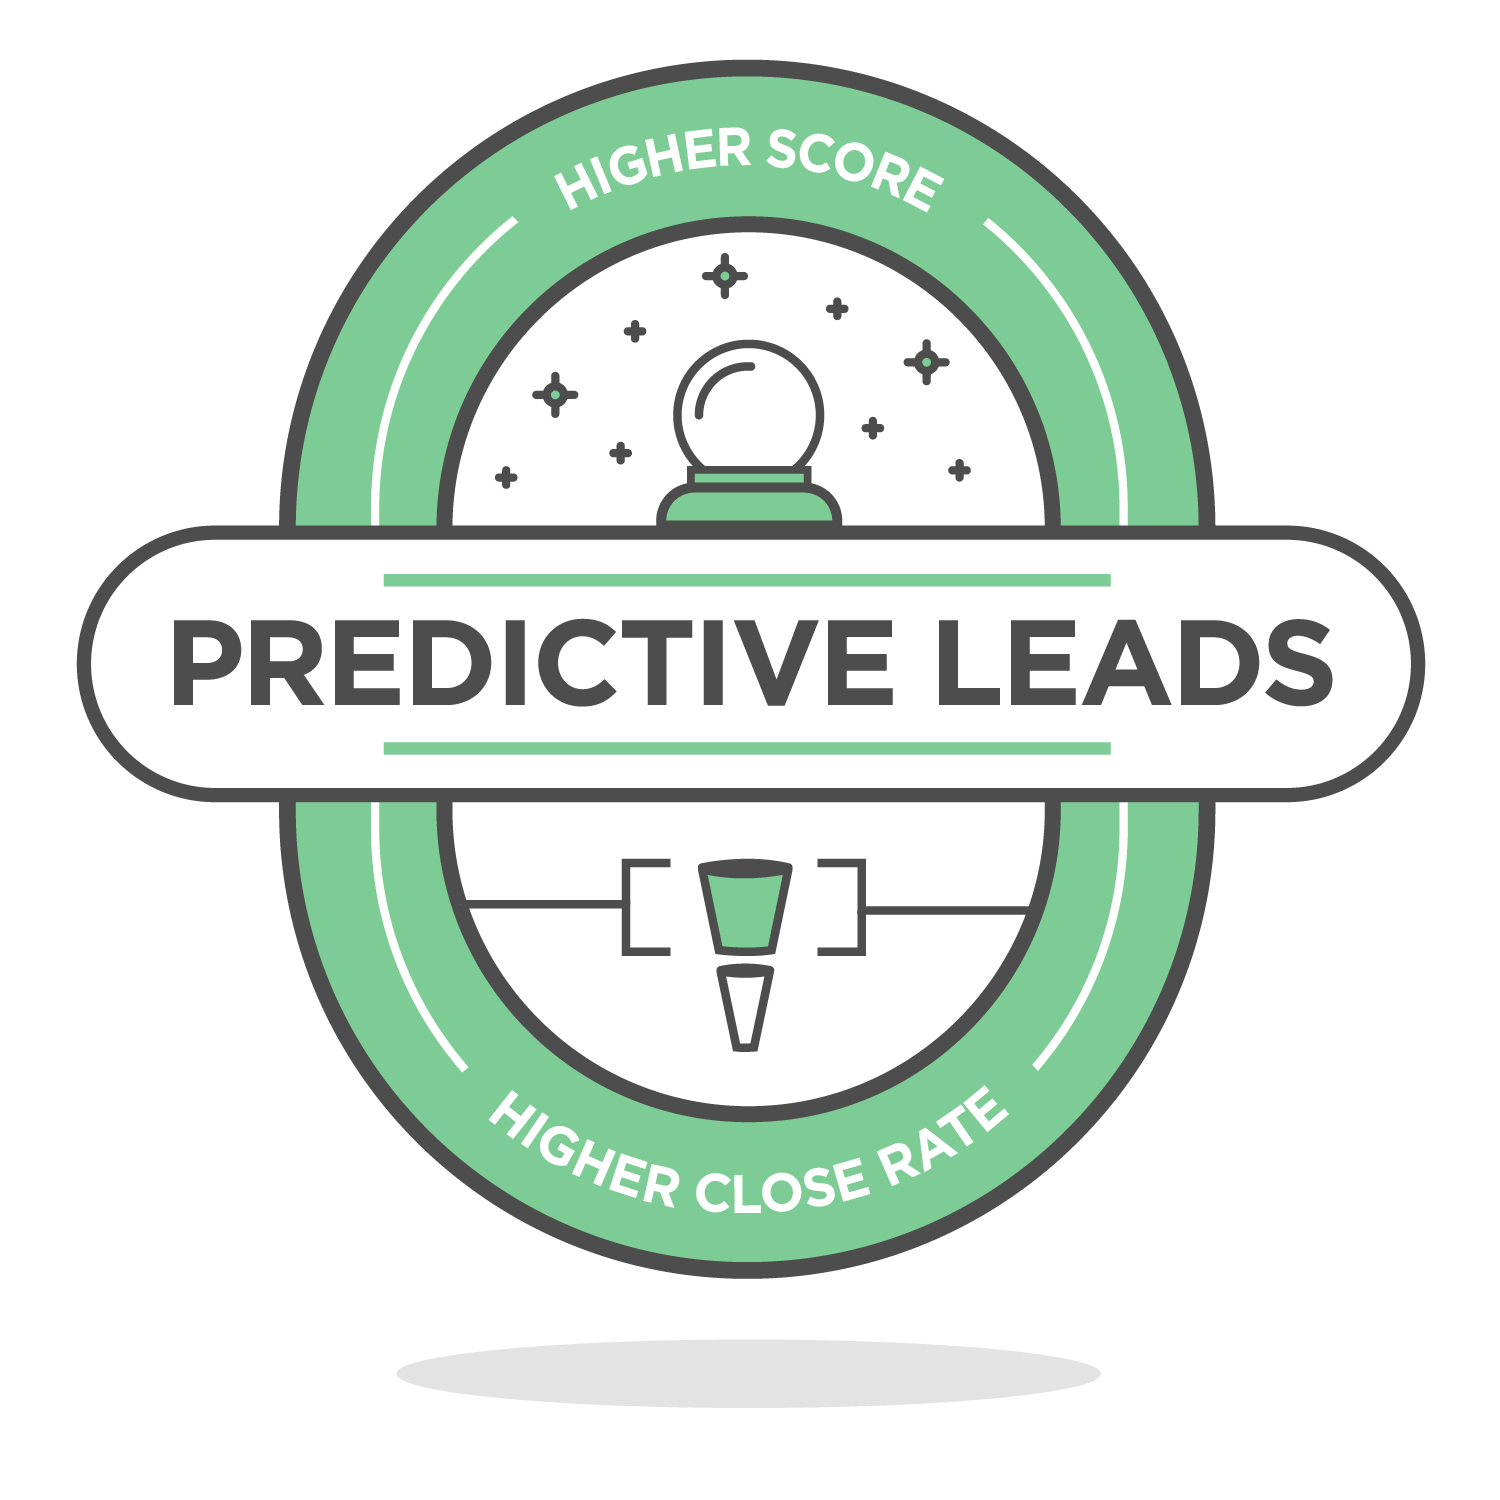 predictive leads badge icon